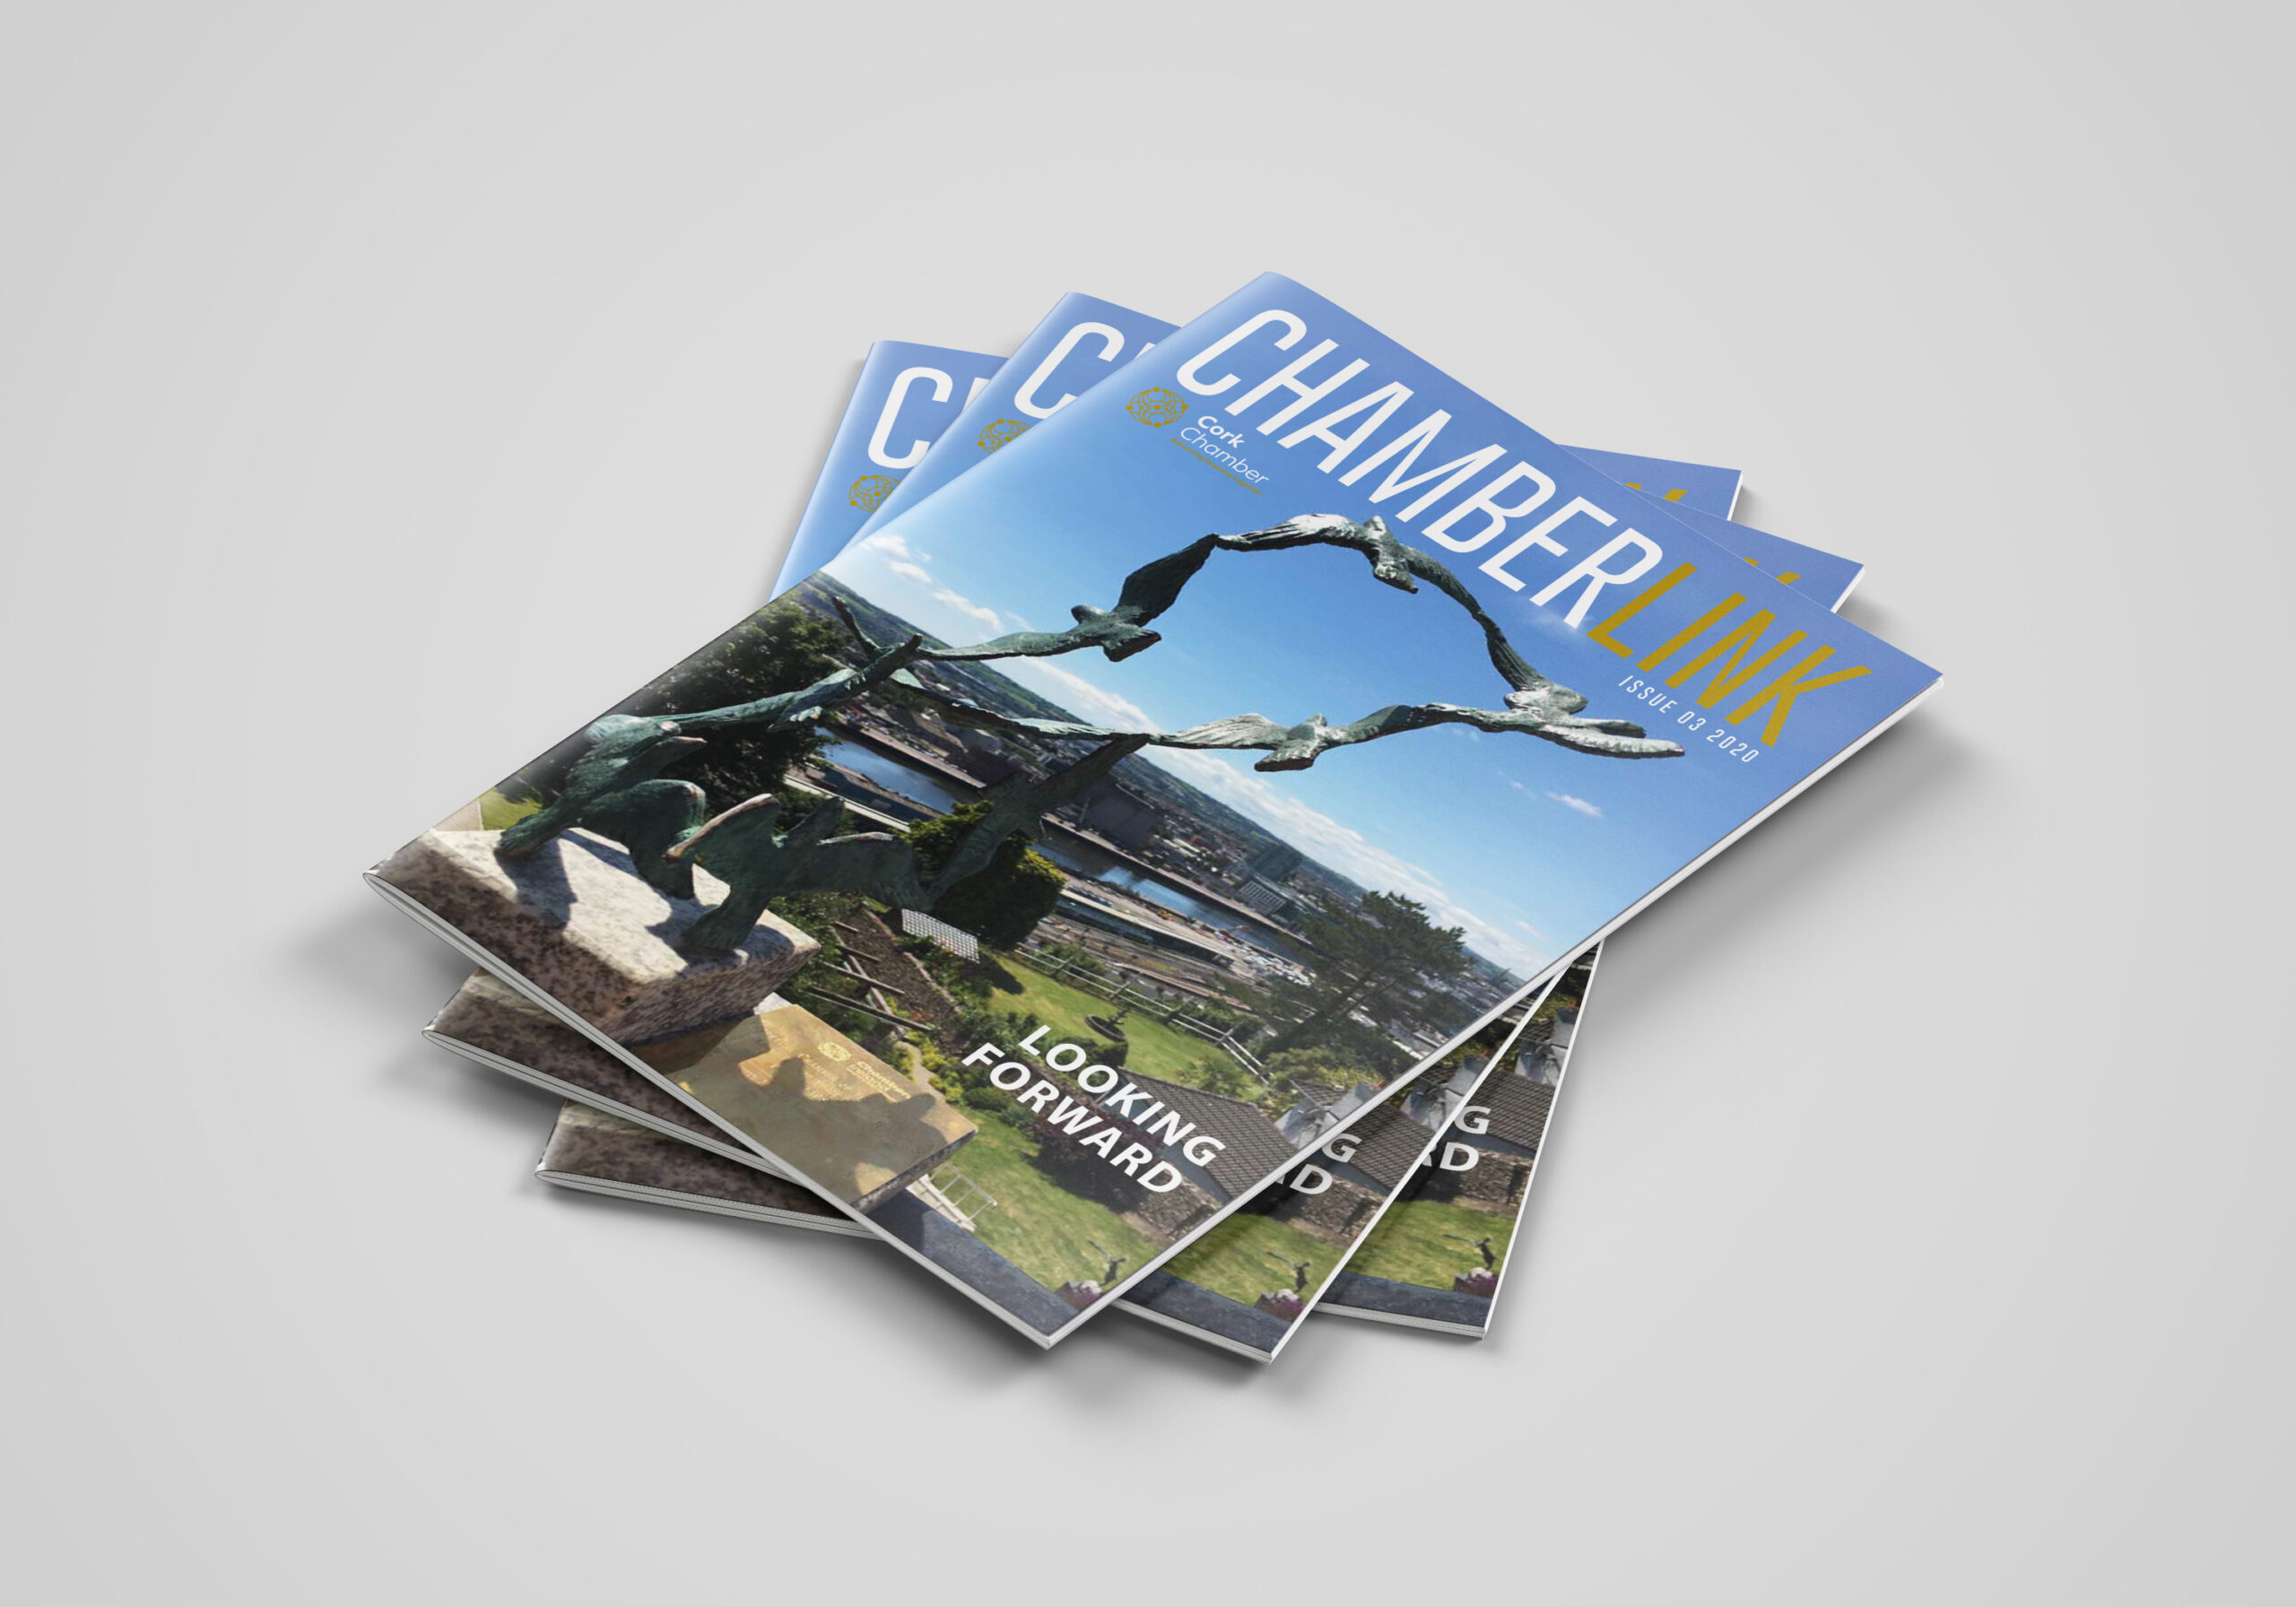 Multiple Covers of of Cahmberlink Magazine